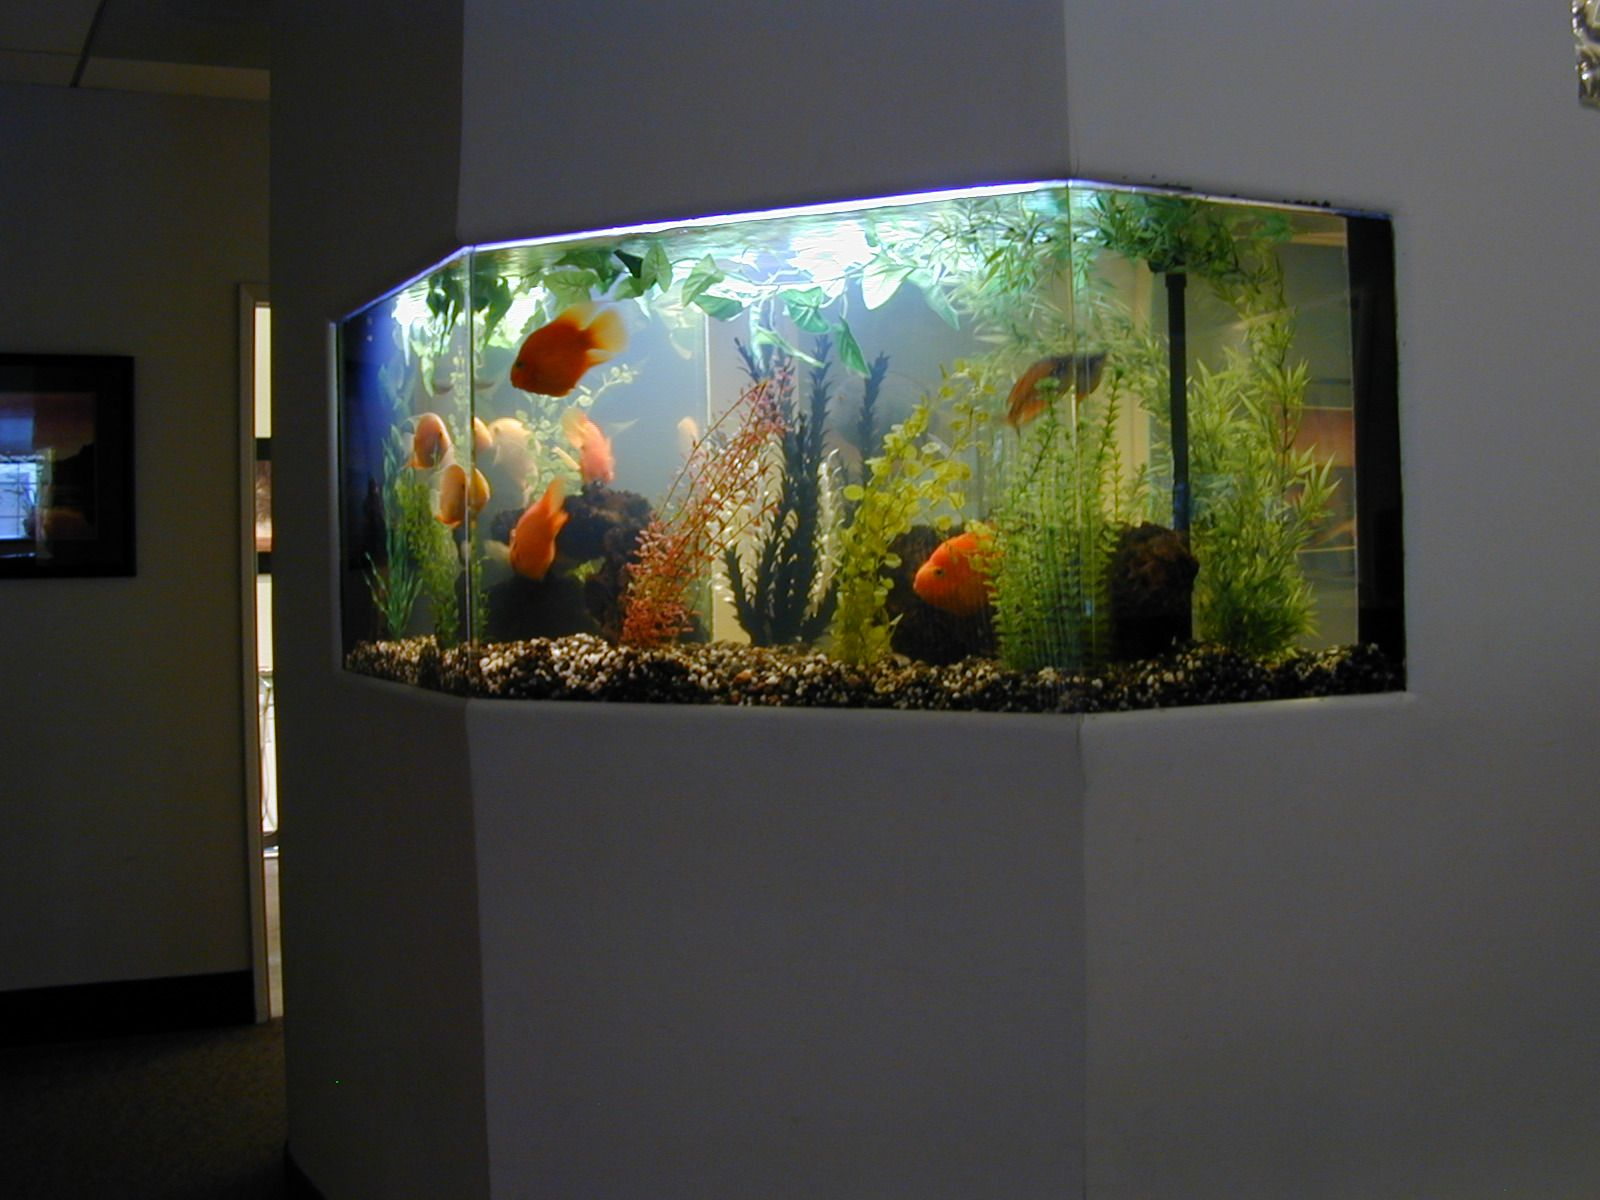 Fish aquarium jobs - If You Love Nature And Would Like To Include Aspects Of It In Your Home Then You Shhould Consider Acquiring A Fish Tank Aquariams Are Stylish And